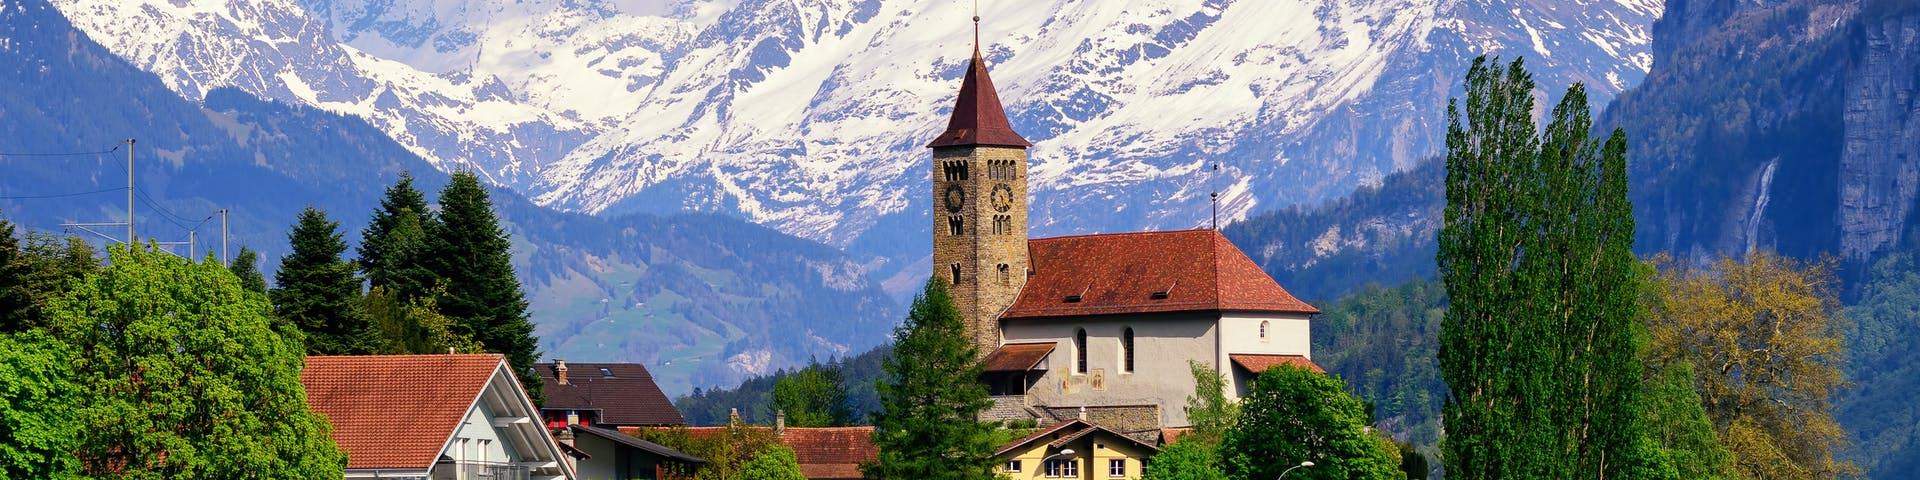 How to Get a Student Visa for Switzerland - MastersPortal com